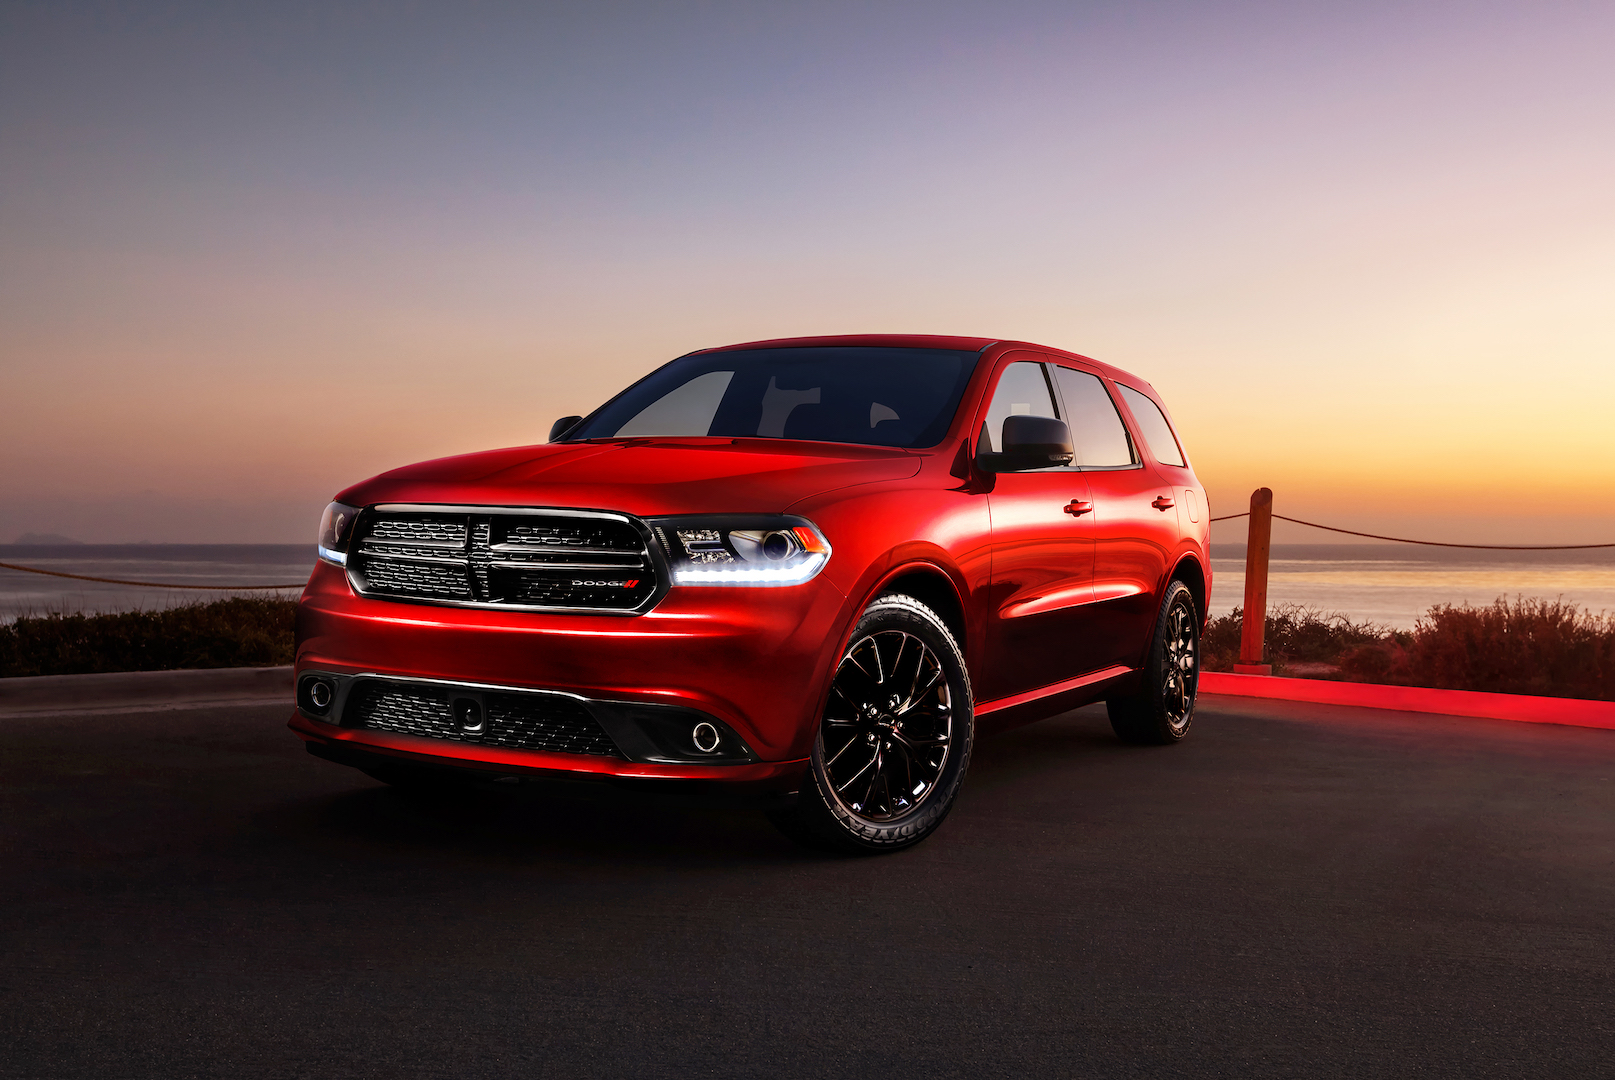 2017 dodge durango safety review and crash test ratings the car connection. Black Bedroom Furniture Sets. Home Design Ideas